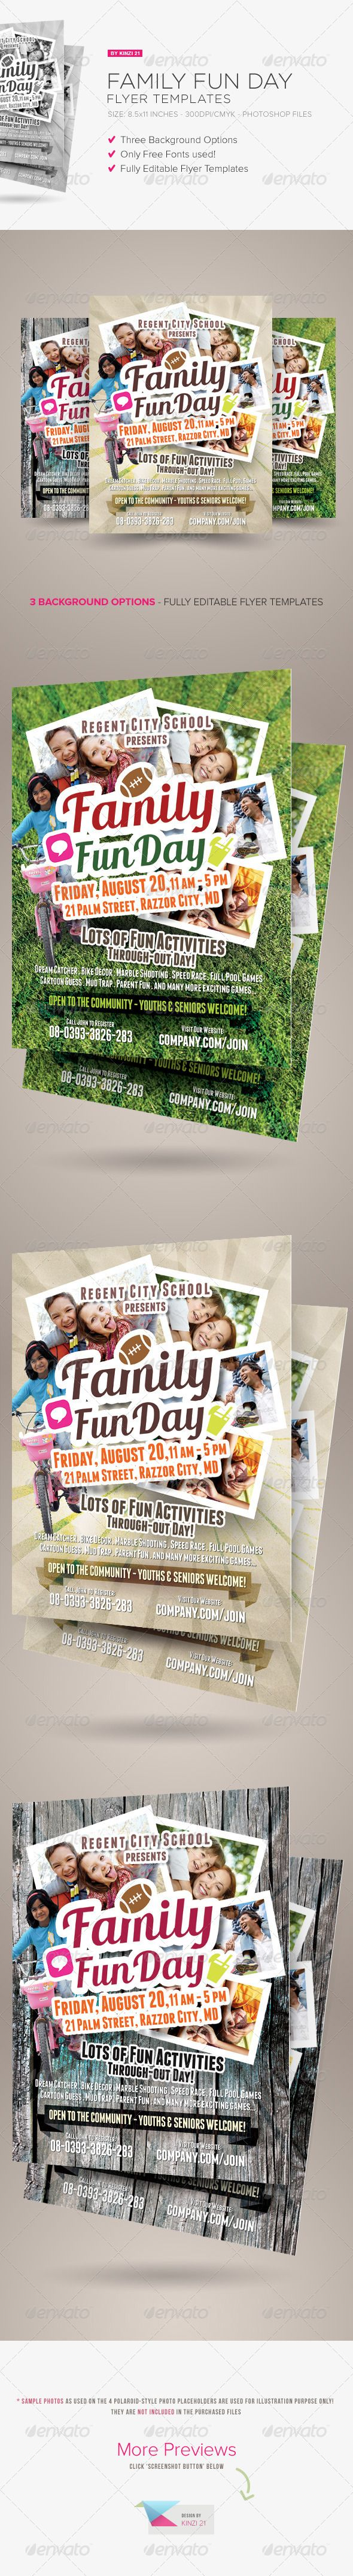 family fun day flyers kid flyer template and family fun day. Black Bedroom Furniture Sets. Home Design Ideas